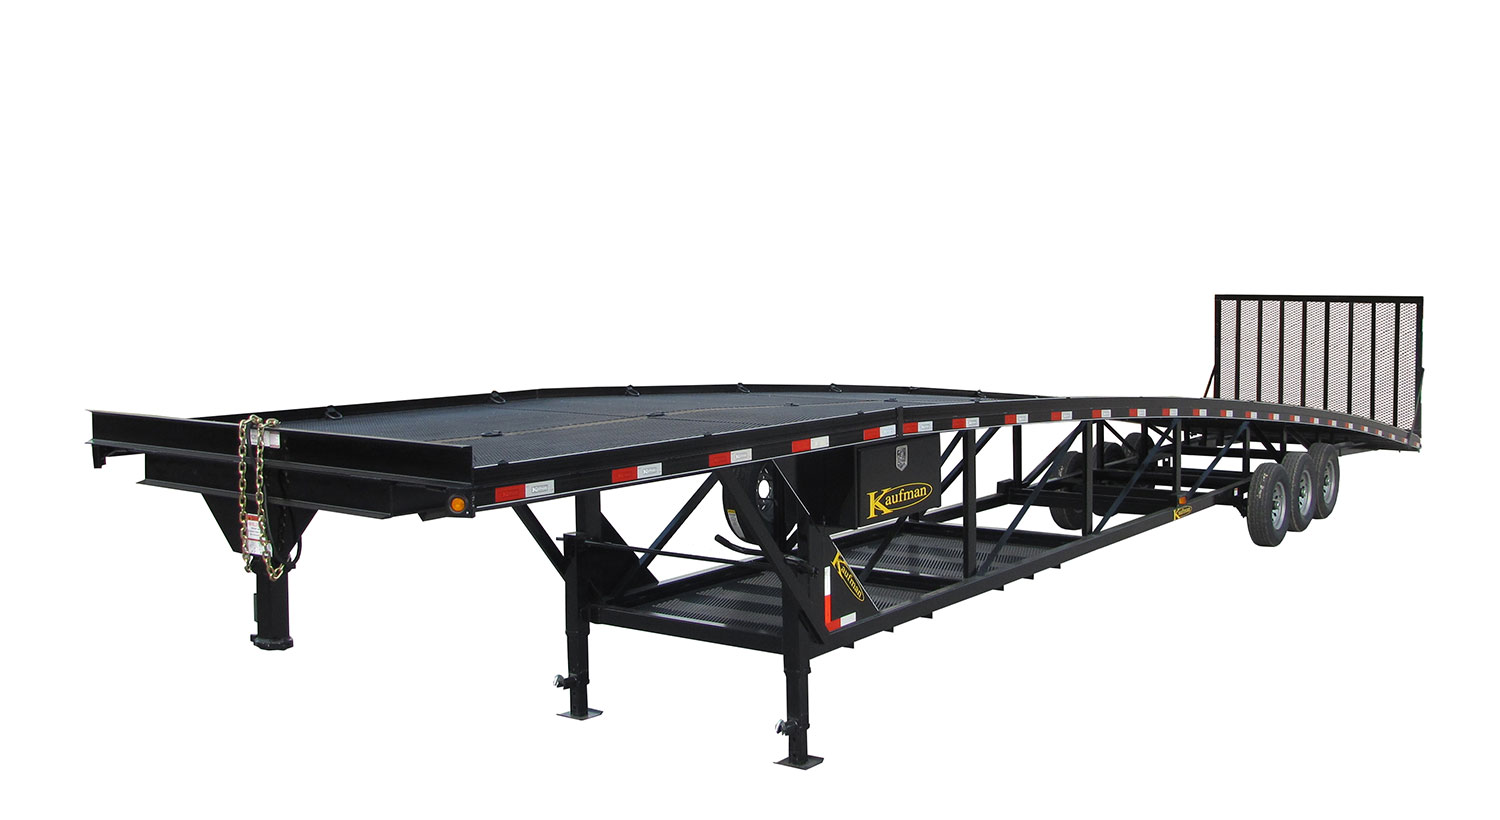 Wedge Golf Car Trailer - 14,000 to 18,000 GVWR 50 ft